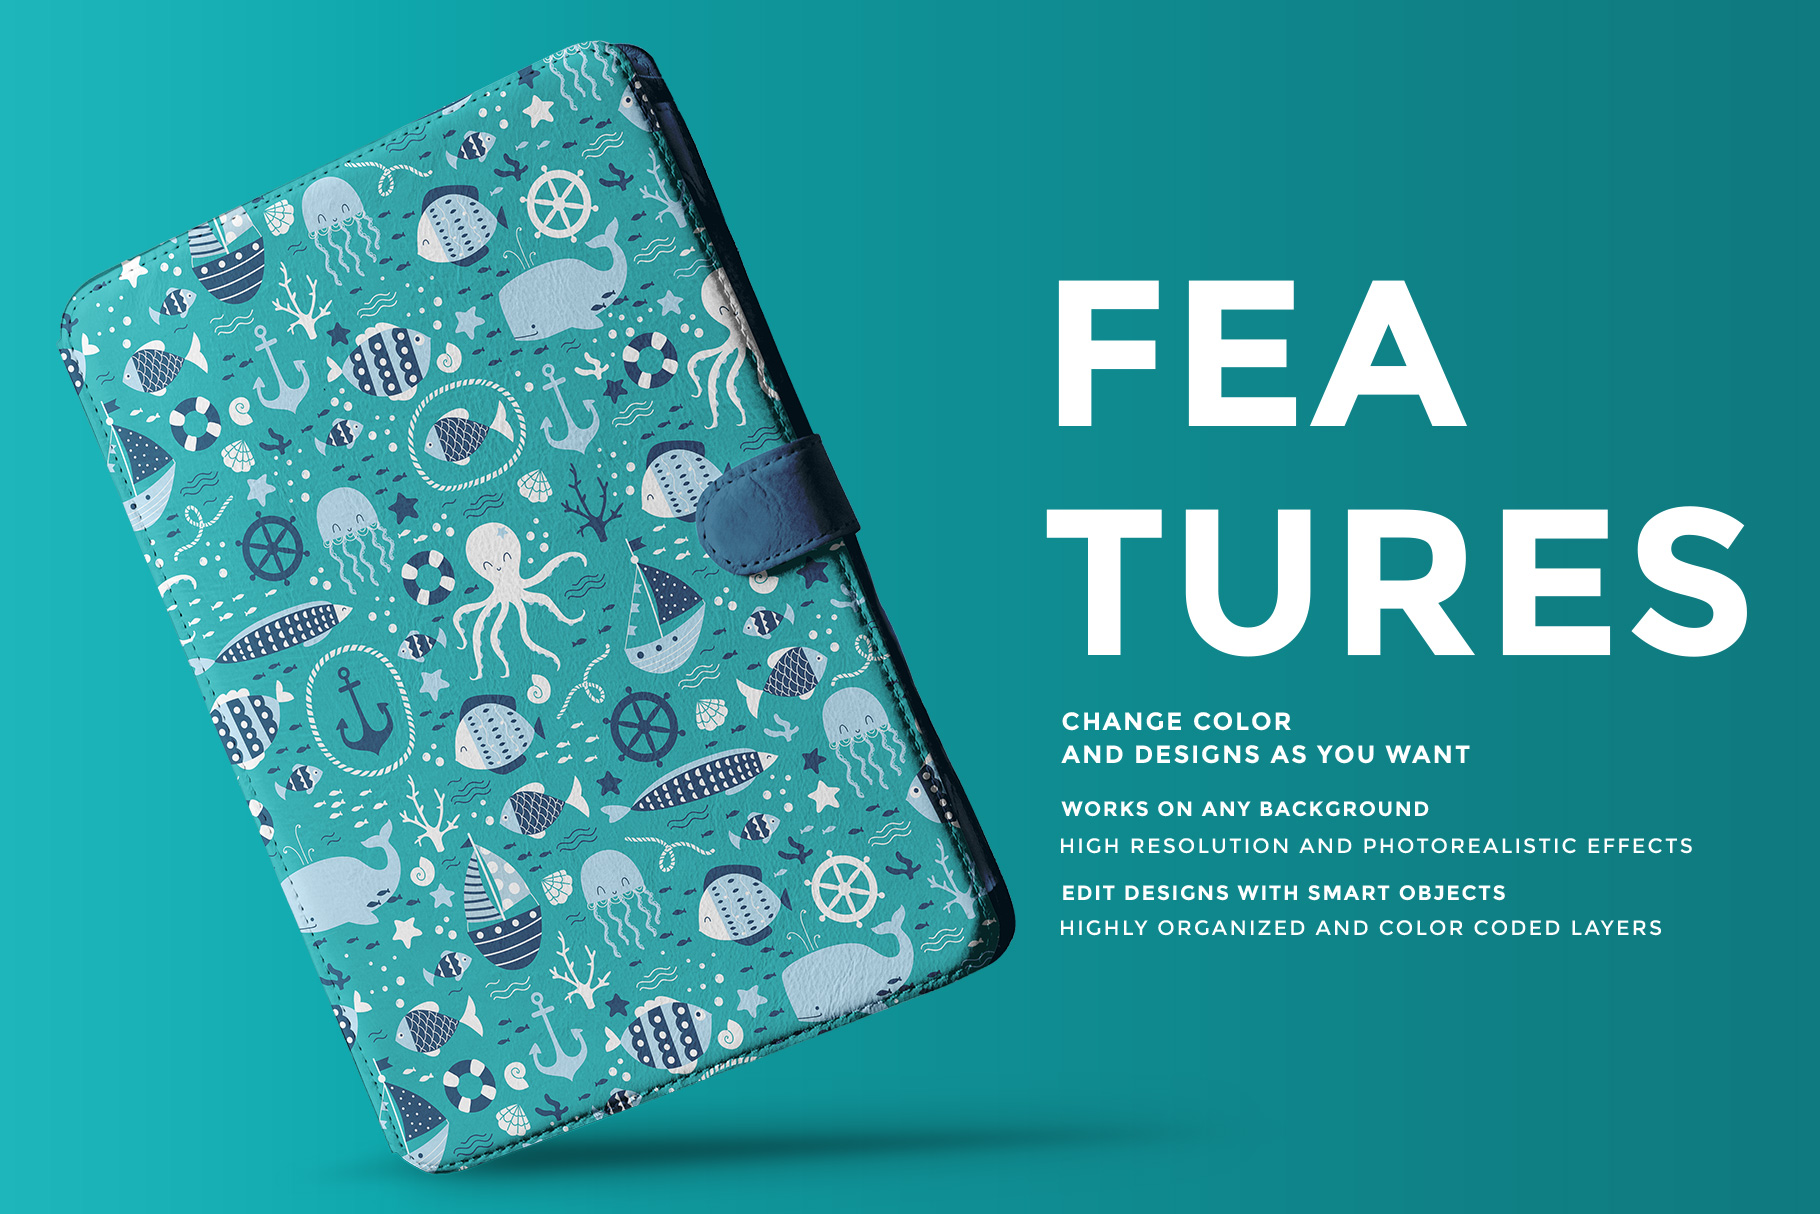 features of the iPad diary case mockup